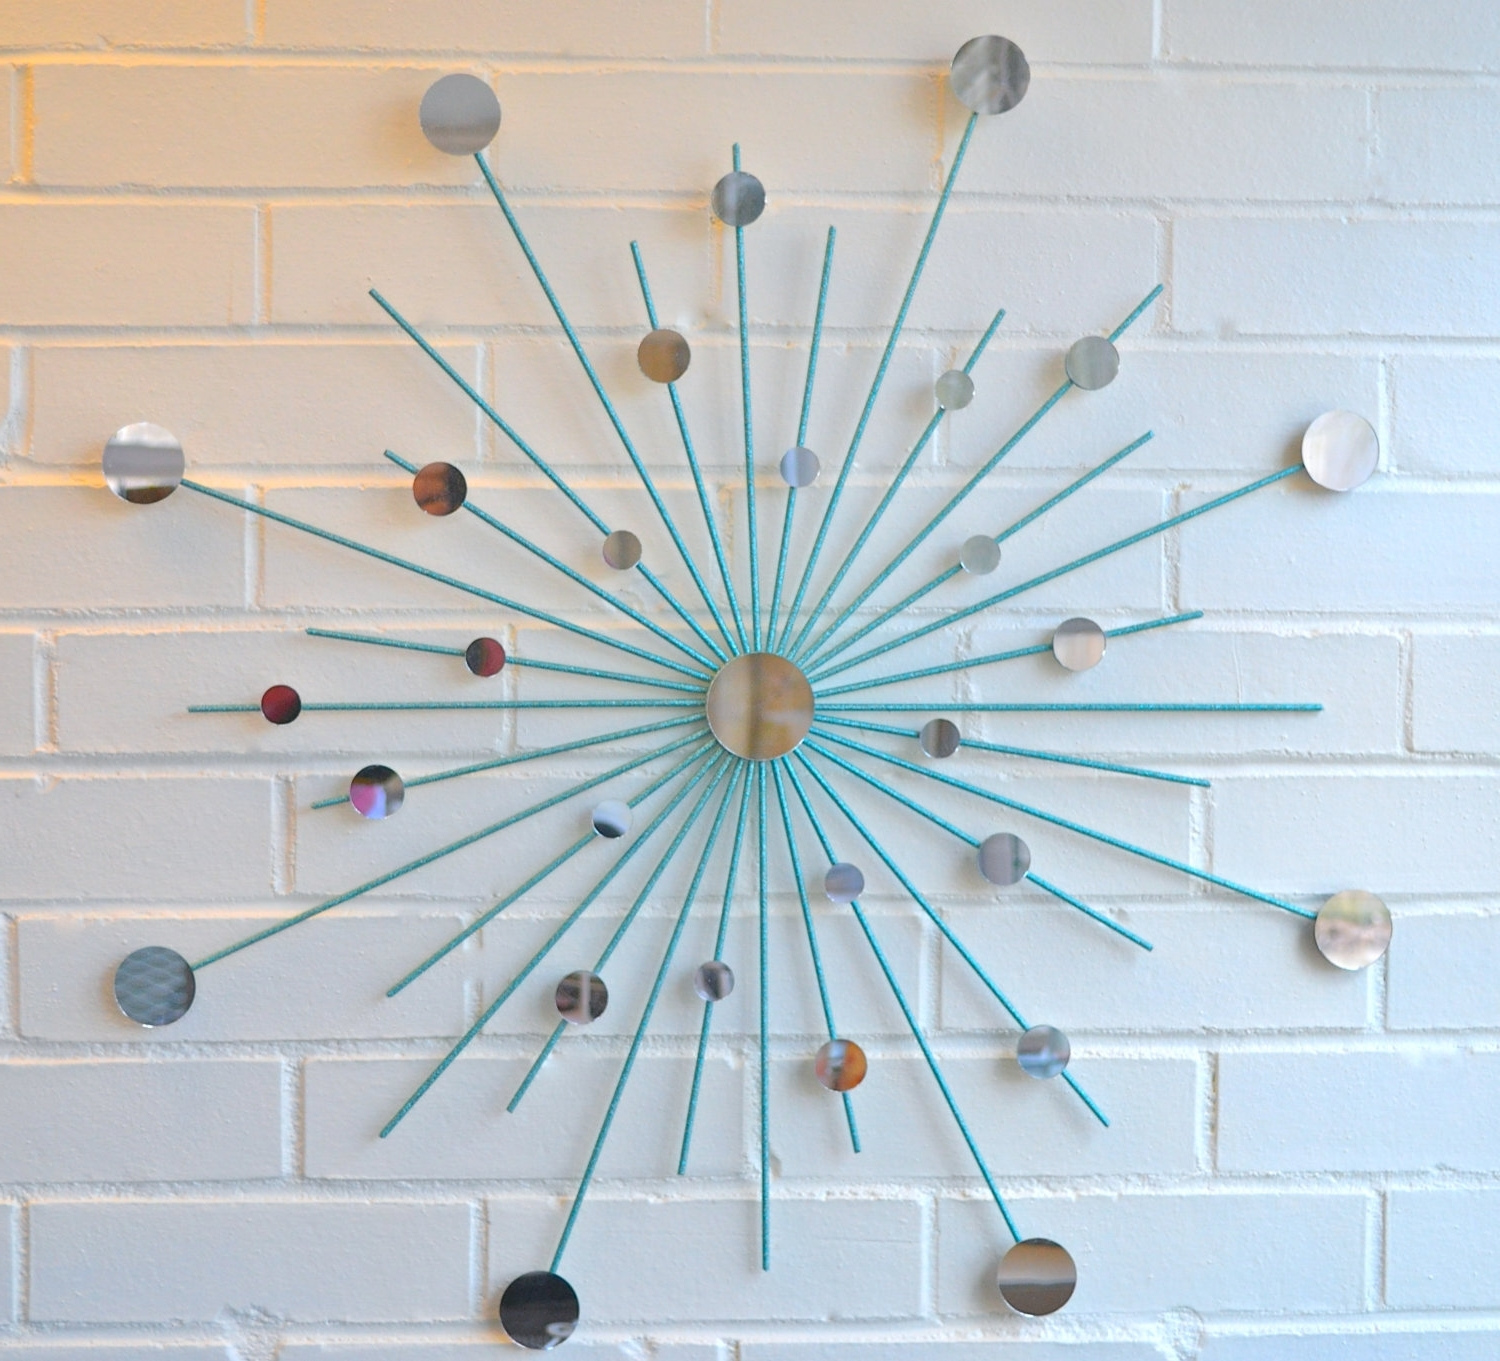 Best And Newest Modern Metal Wall Art Mirror Mod Style Star Starburst Sun Sunburst Pertaining To Turquoise Metal Wall Art (View 10 of 15)